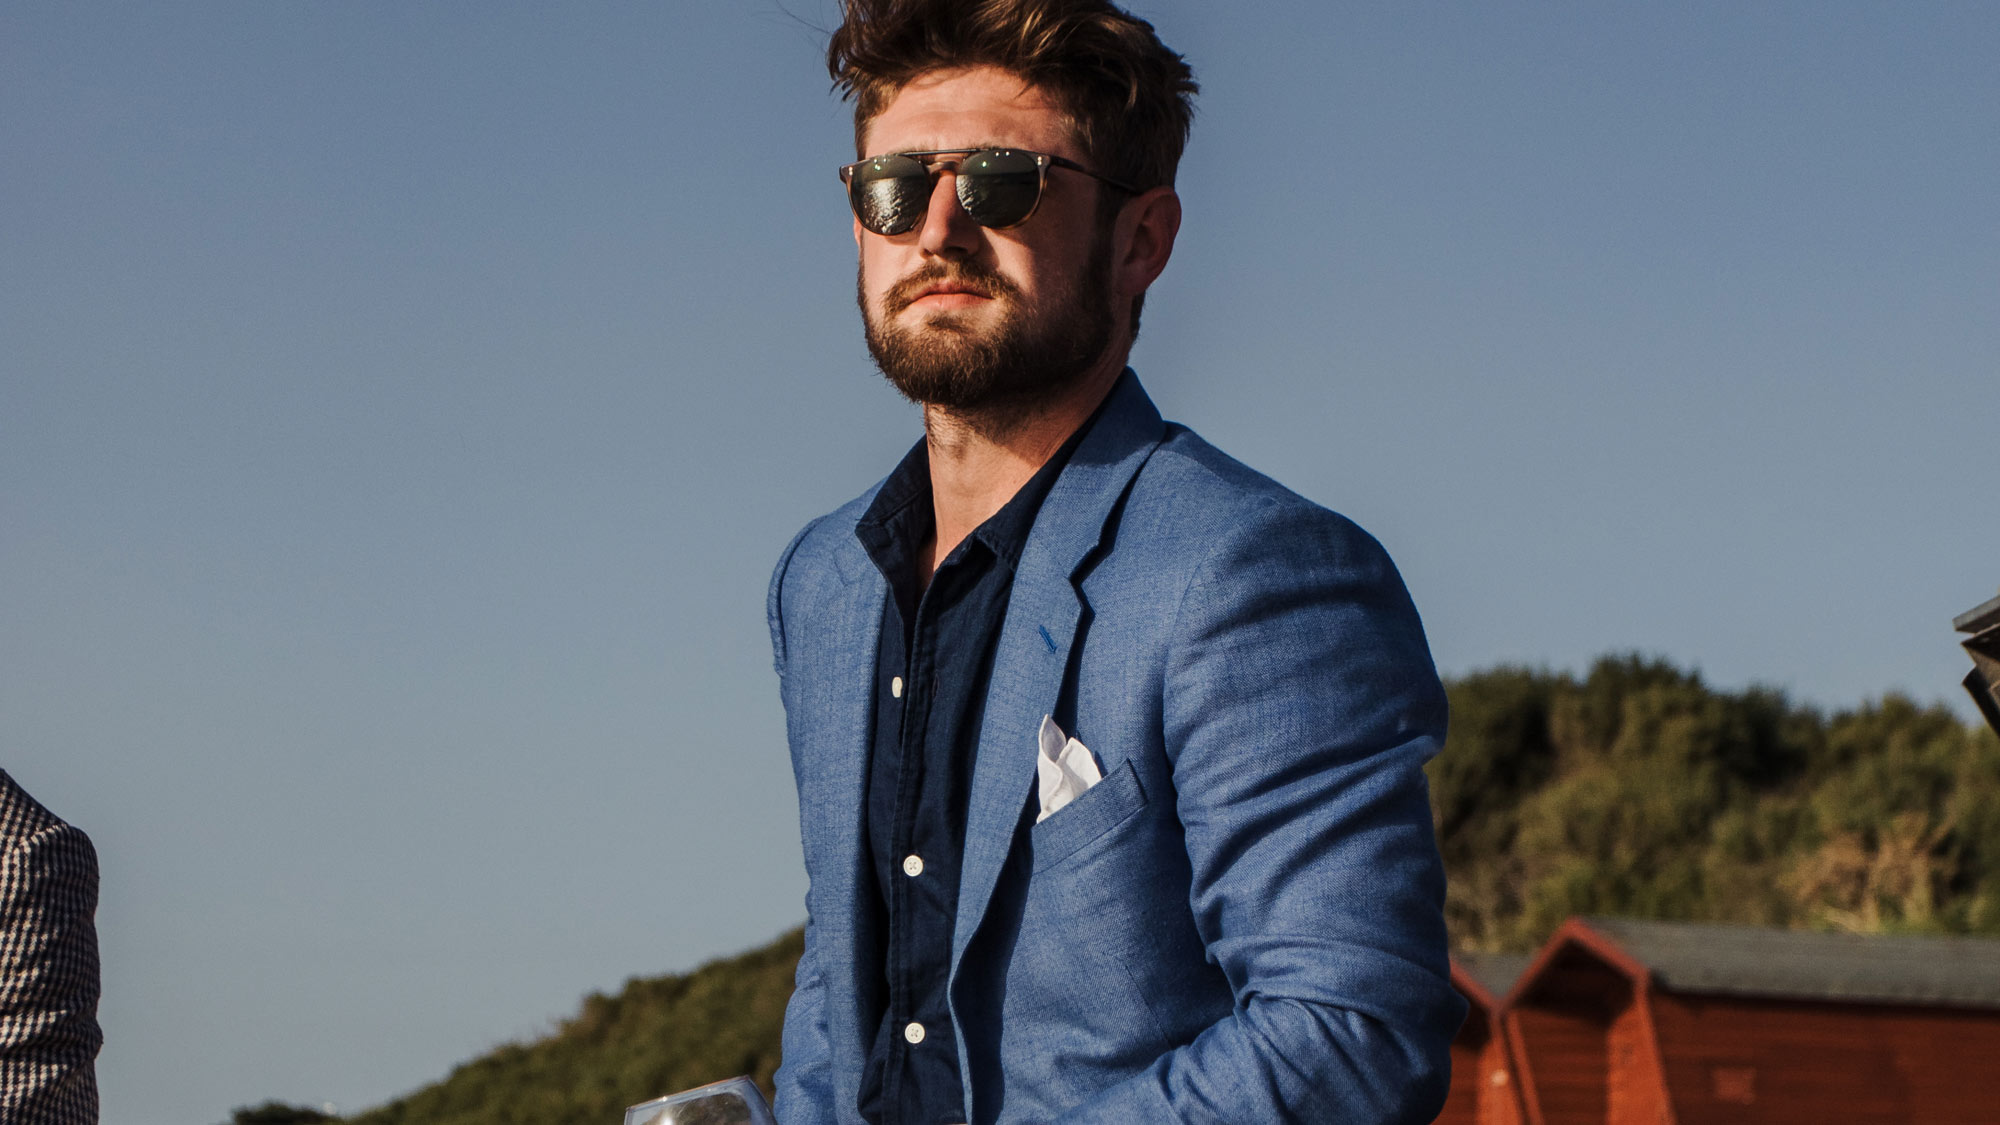 Bespoke Summer Suits